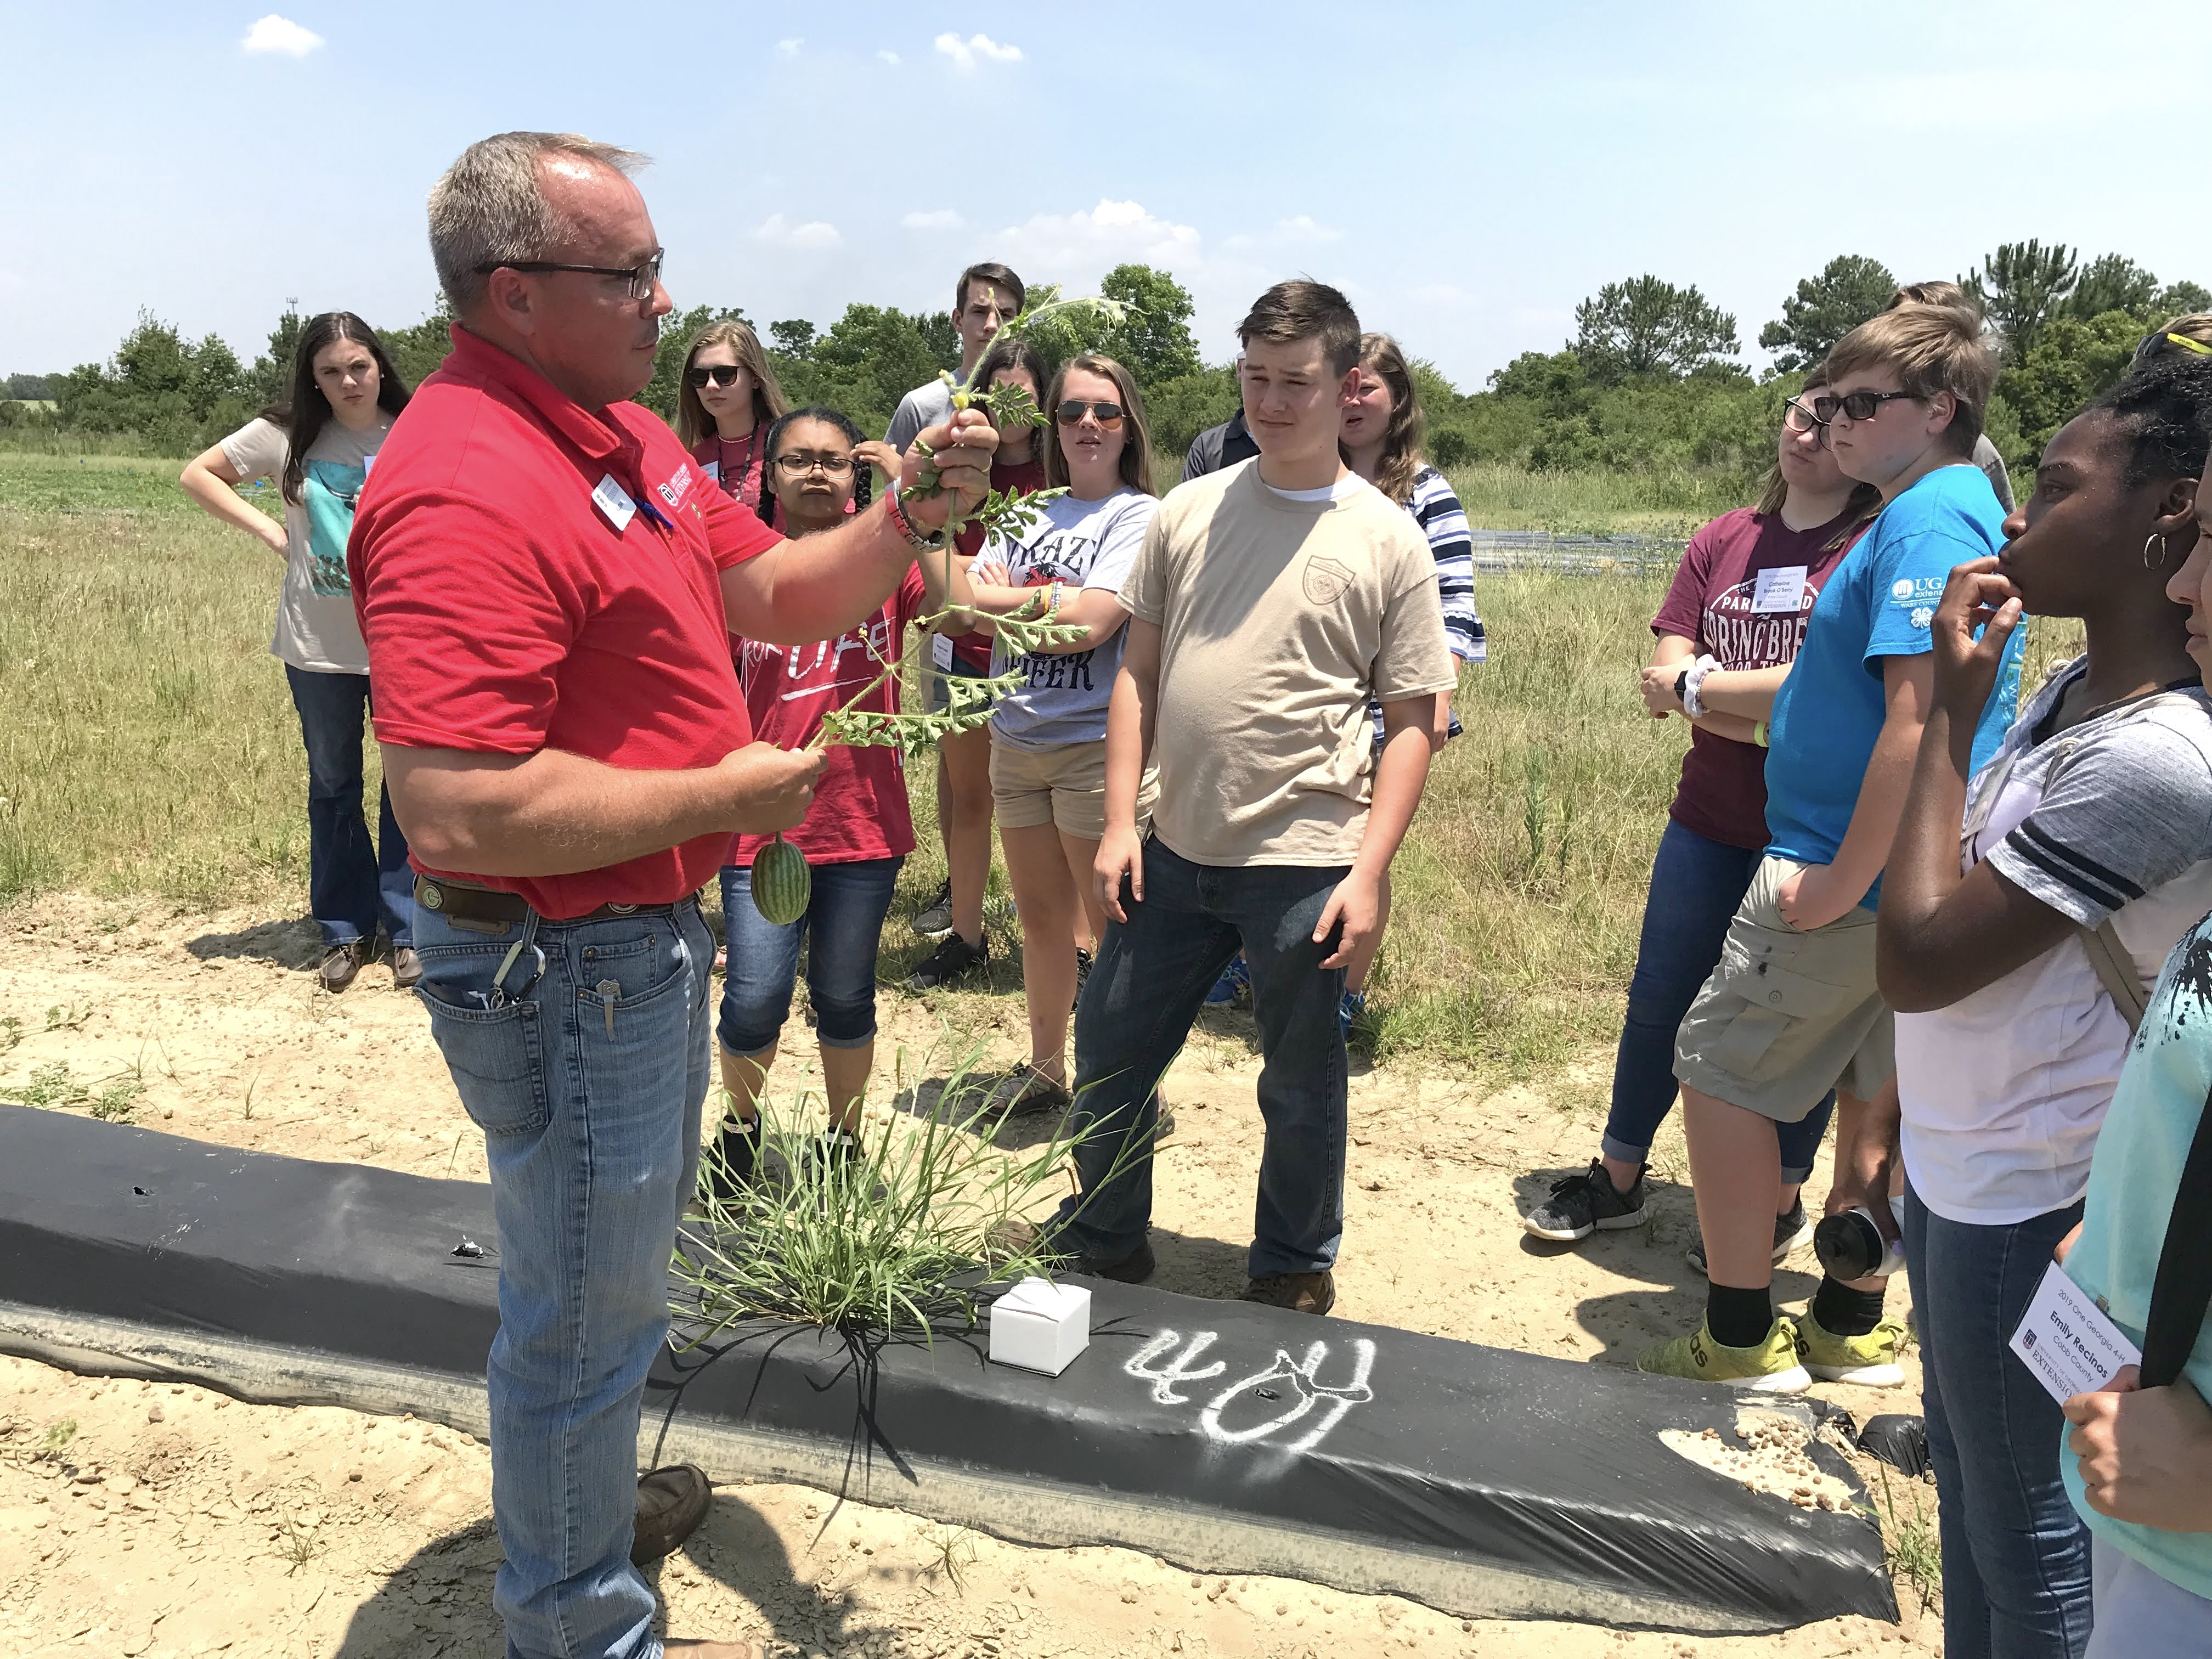 Students in the One Georgia program are shown learning about watermelon farming from Sumter County Extension Agent Bill Starr. While in south Georgia, the students also visited cotton fields and saw turfgrass sod harvested.